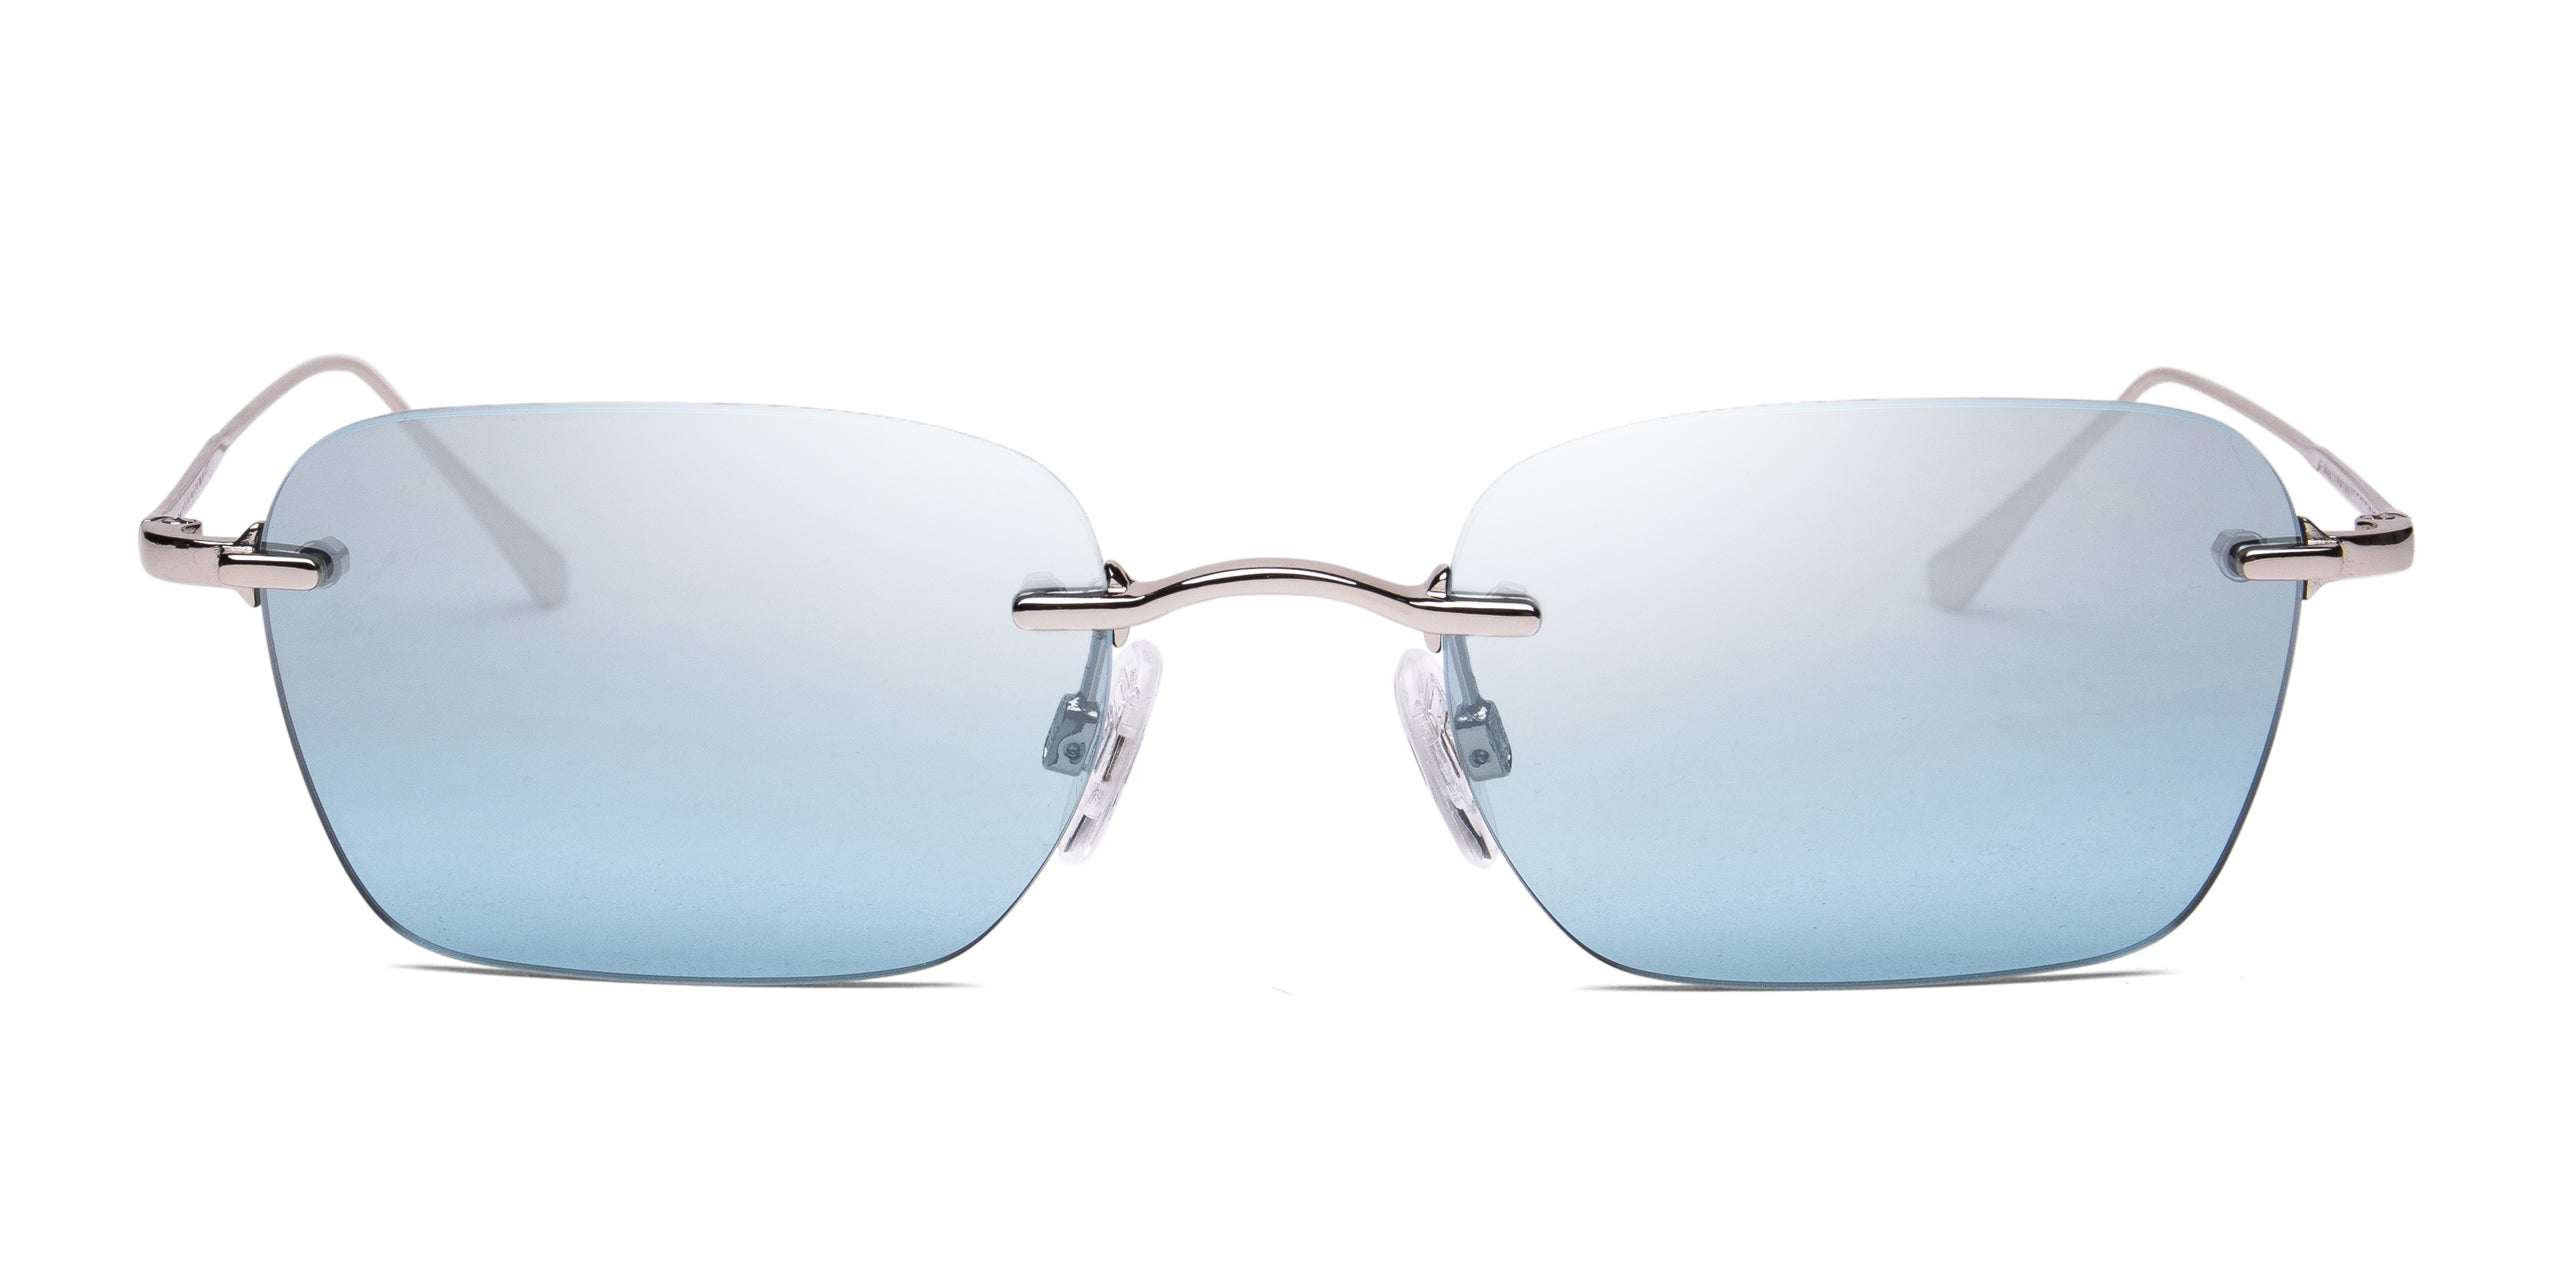 FRAME Silver LENS Gradient Silver to Blue